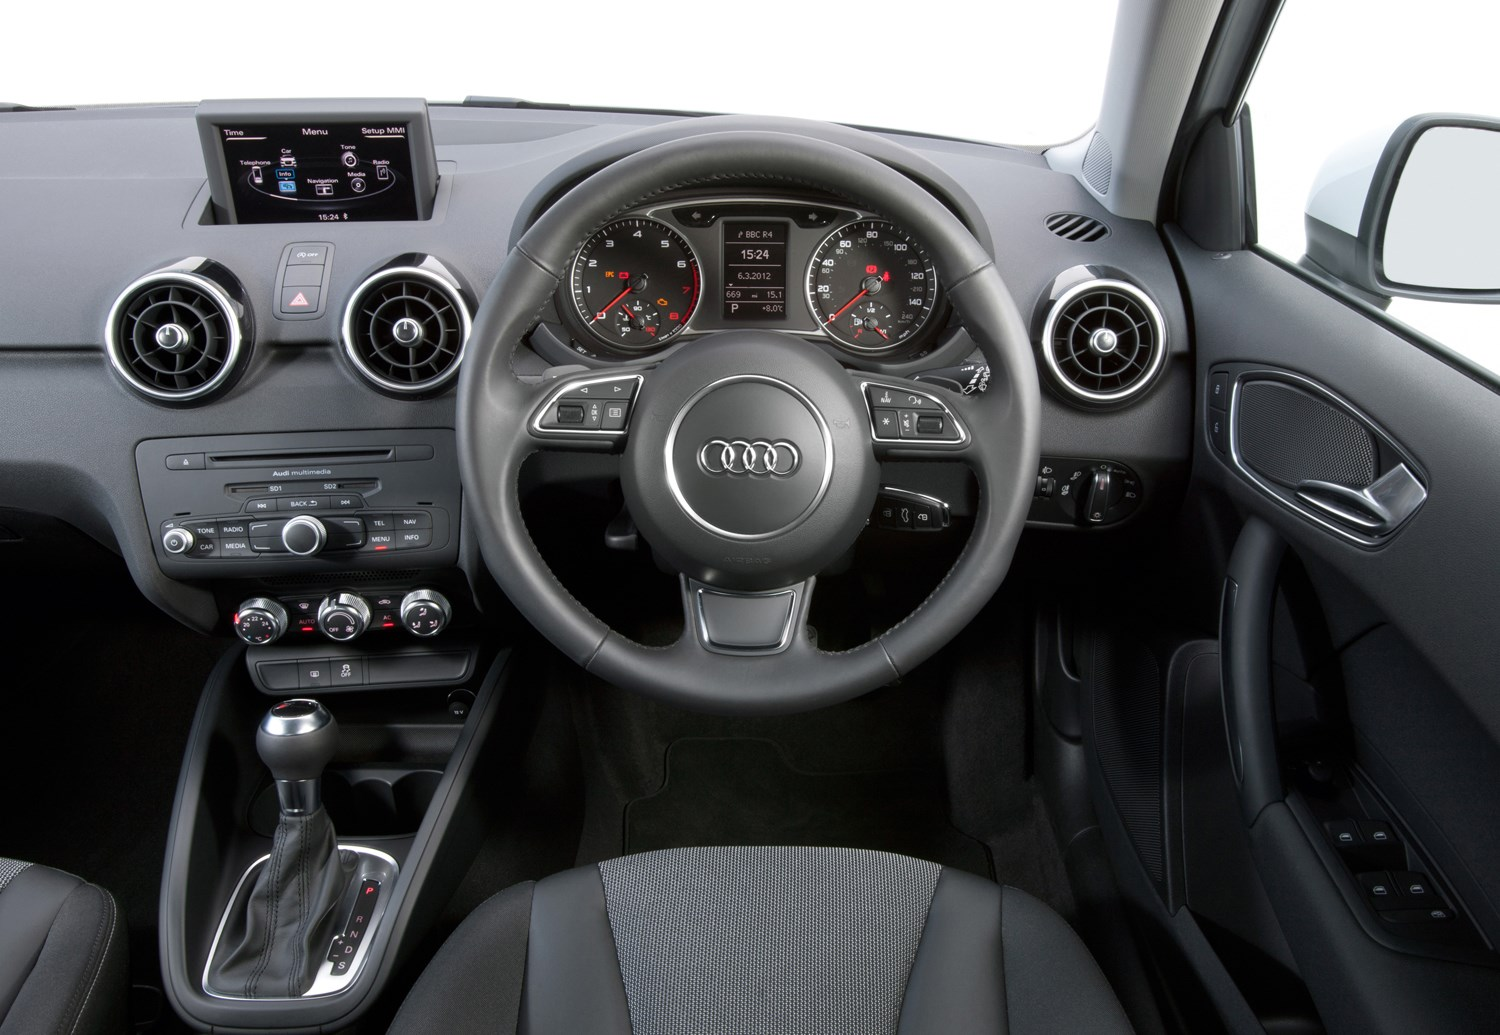 View All Images Of The Audi A1 Sportback